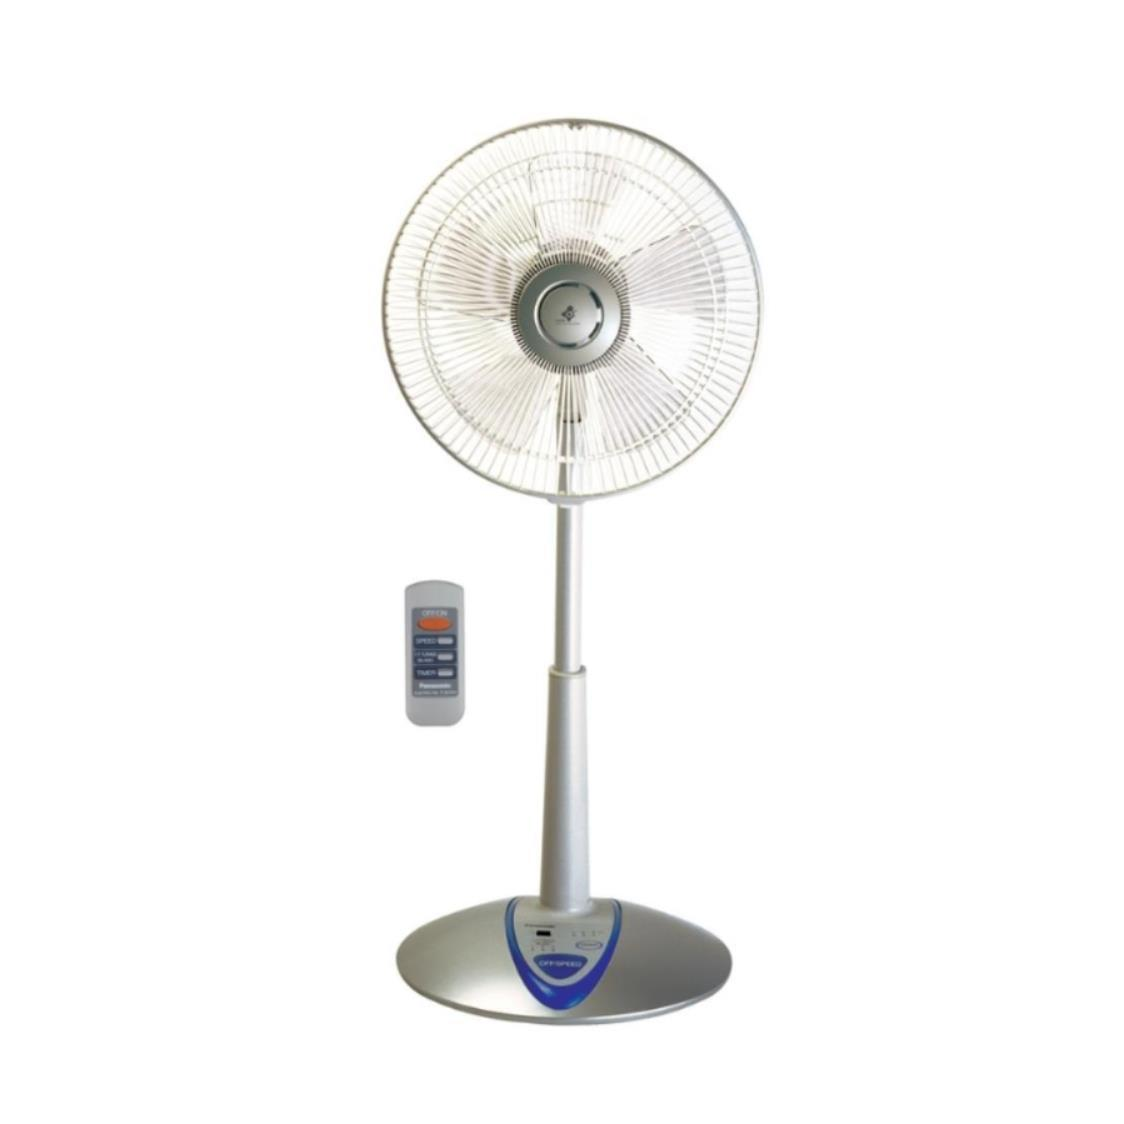 Electric Living Fan W Remote Control 12 F-307KHT